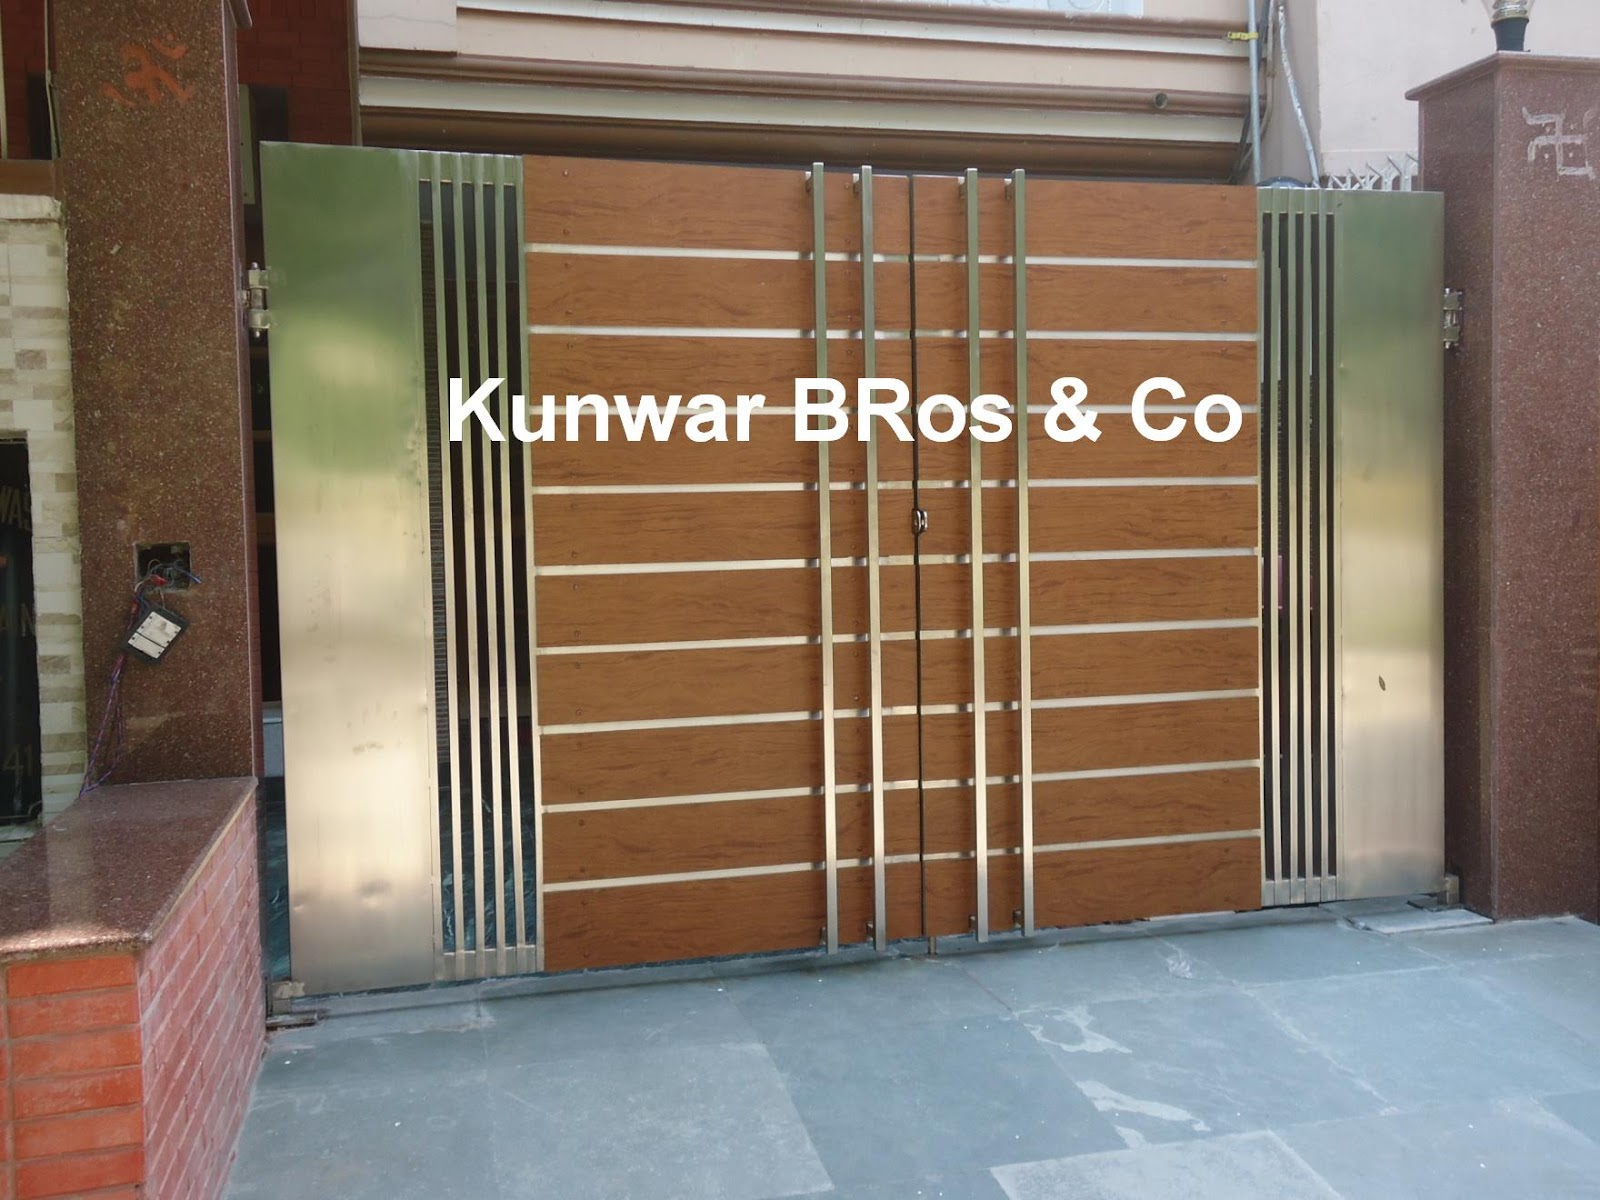 Kunwar bros co stainless steel main gate for Wooden main gate design